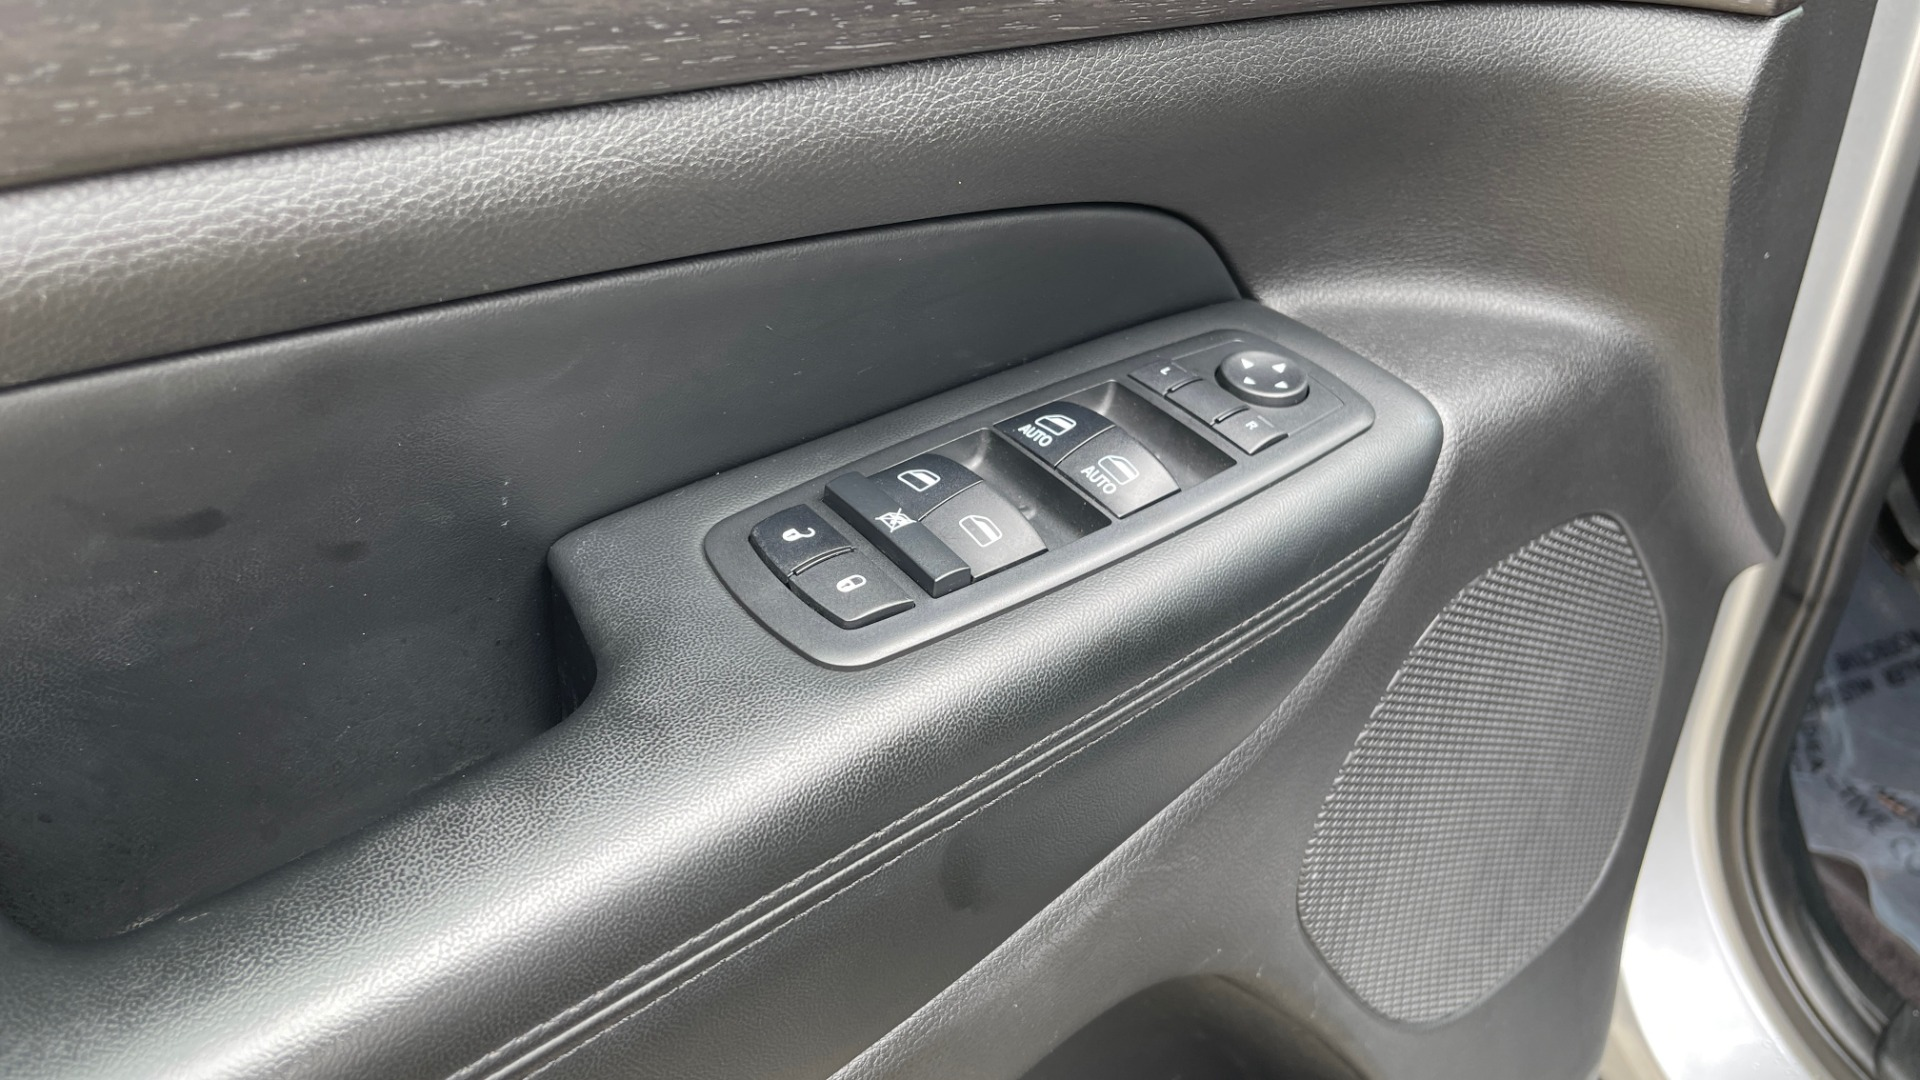 Used 2017 Jeep GRAND CHEROKEE LAREDO E 4X4 / KEYLESS-GO / 8.4IN TOUCH SCREEN / REARVIEW for sale $27,595 at Formula Imports in Charlotte NC 28227 24